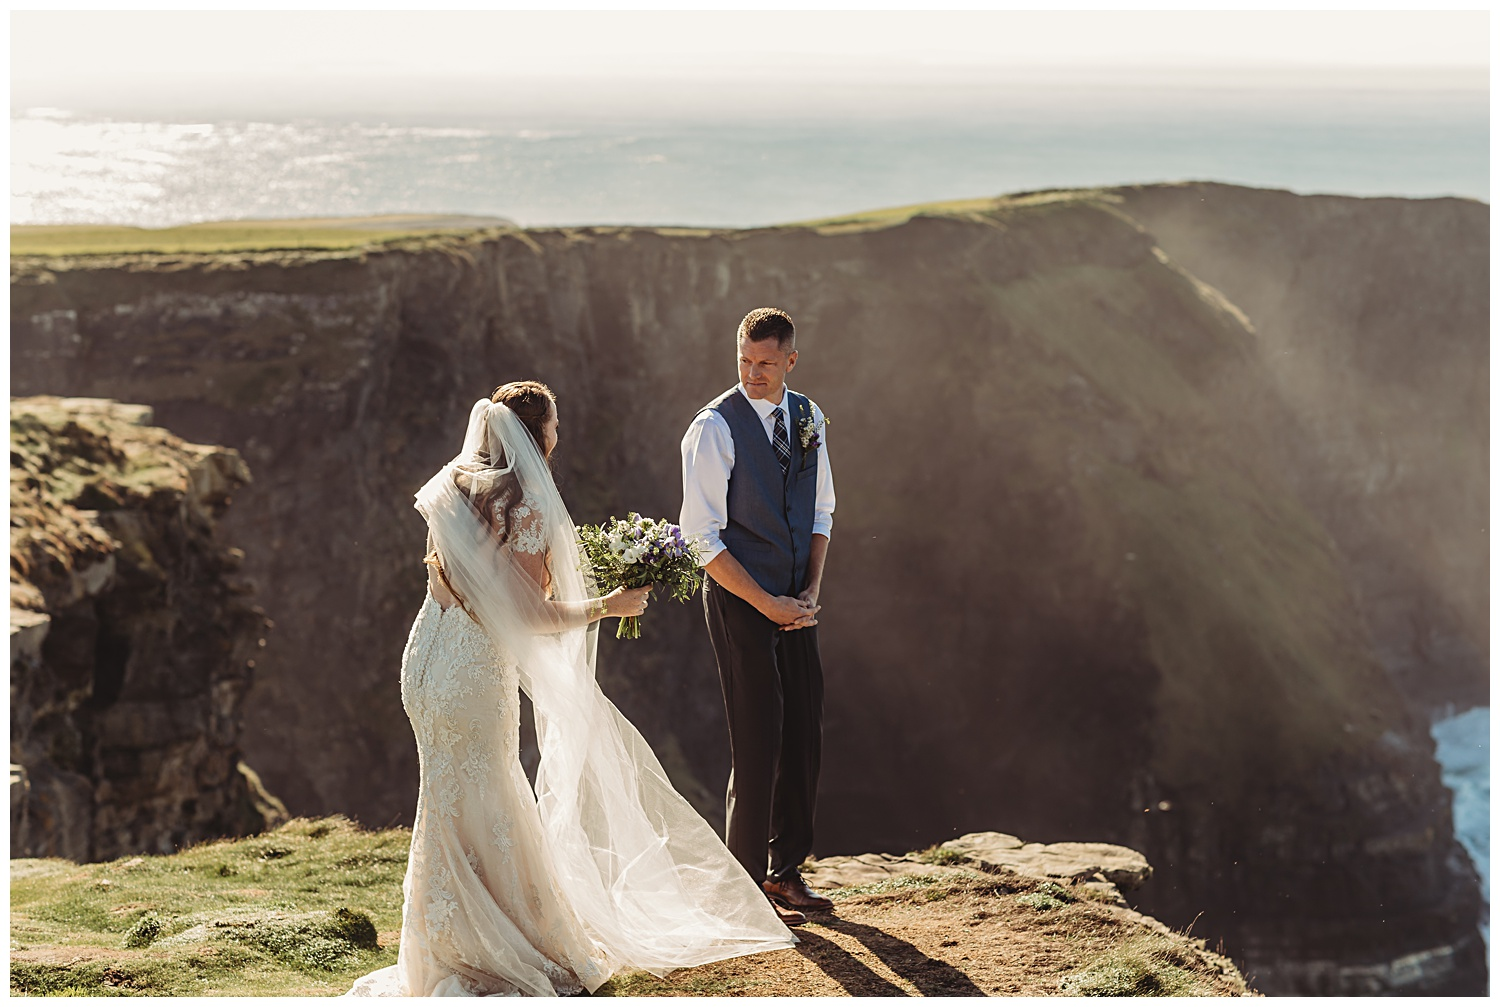 The Cliffs of Moher Destination Wedding Liscannor, County Clare, Ireland_1222.jpg